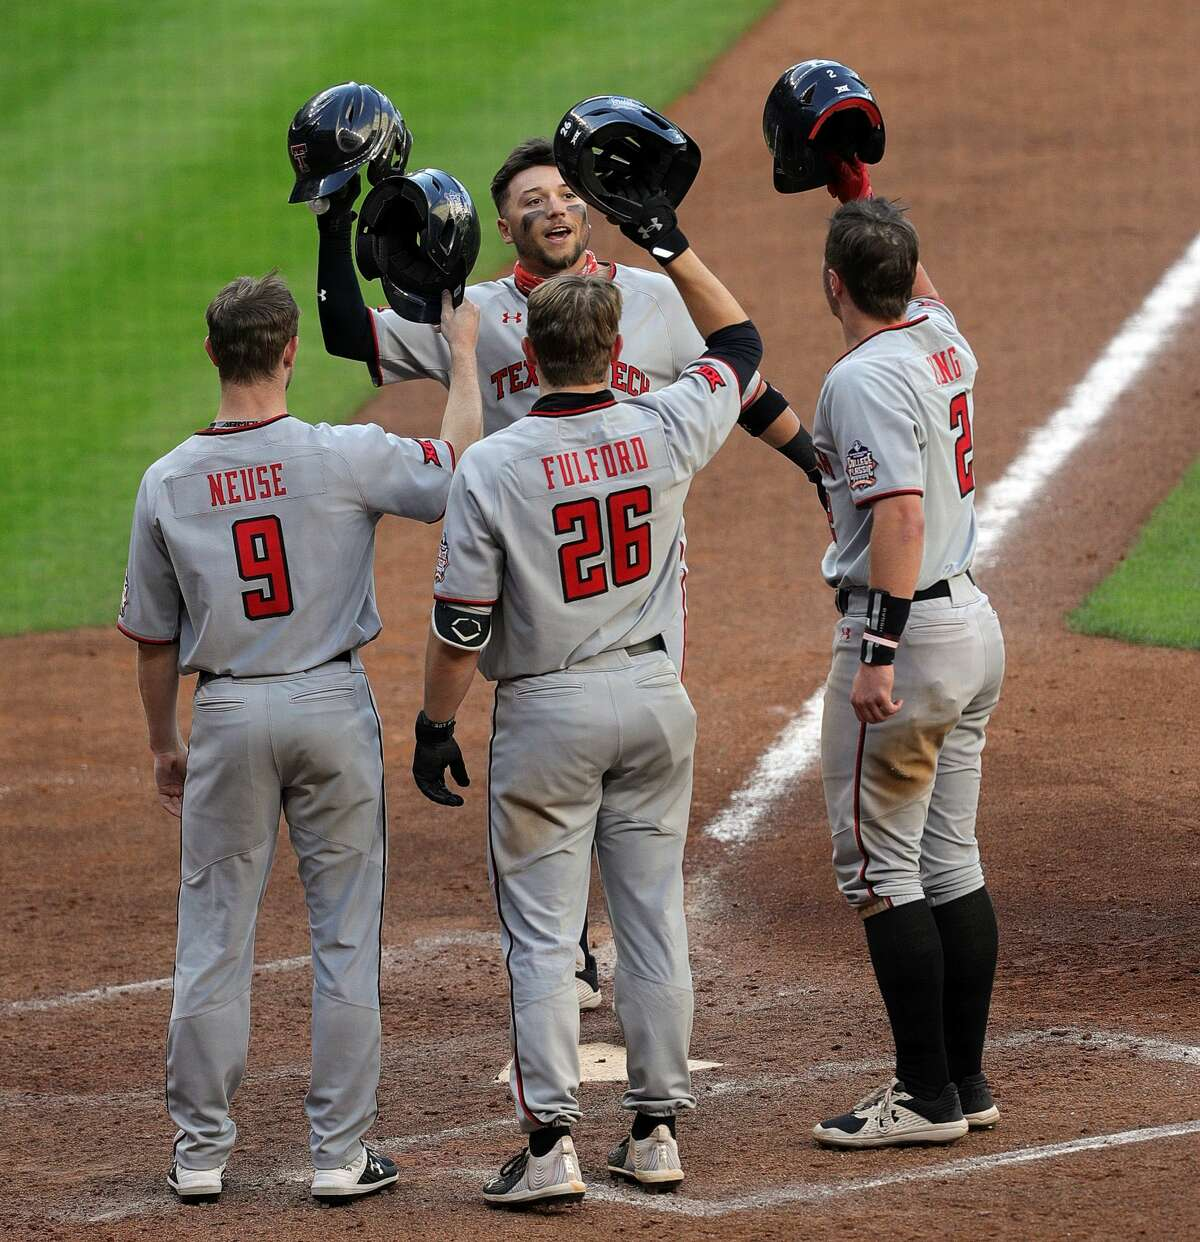 HOUSTON, TEXAS - MARCH 06: Cal Conley #13 of the Texas Tech Red Raiders is congratulated by Dylan Neuse #9, Braxton Fulford #26 and Jace Jung #2 after hitting a home run in the seventh inning against the Sam Houston State Bearkats at Minute Maid Park on March 06, 2021 in Houston, Texas. (Photo by Bob Levey/Getty Images)